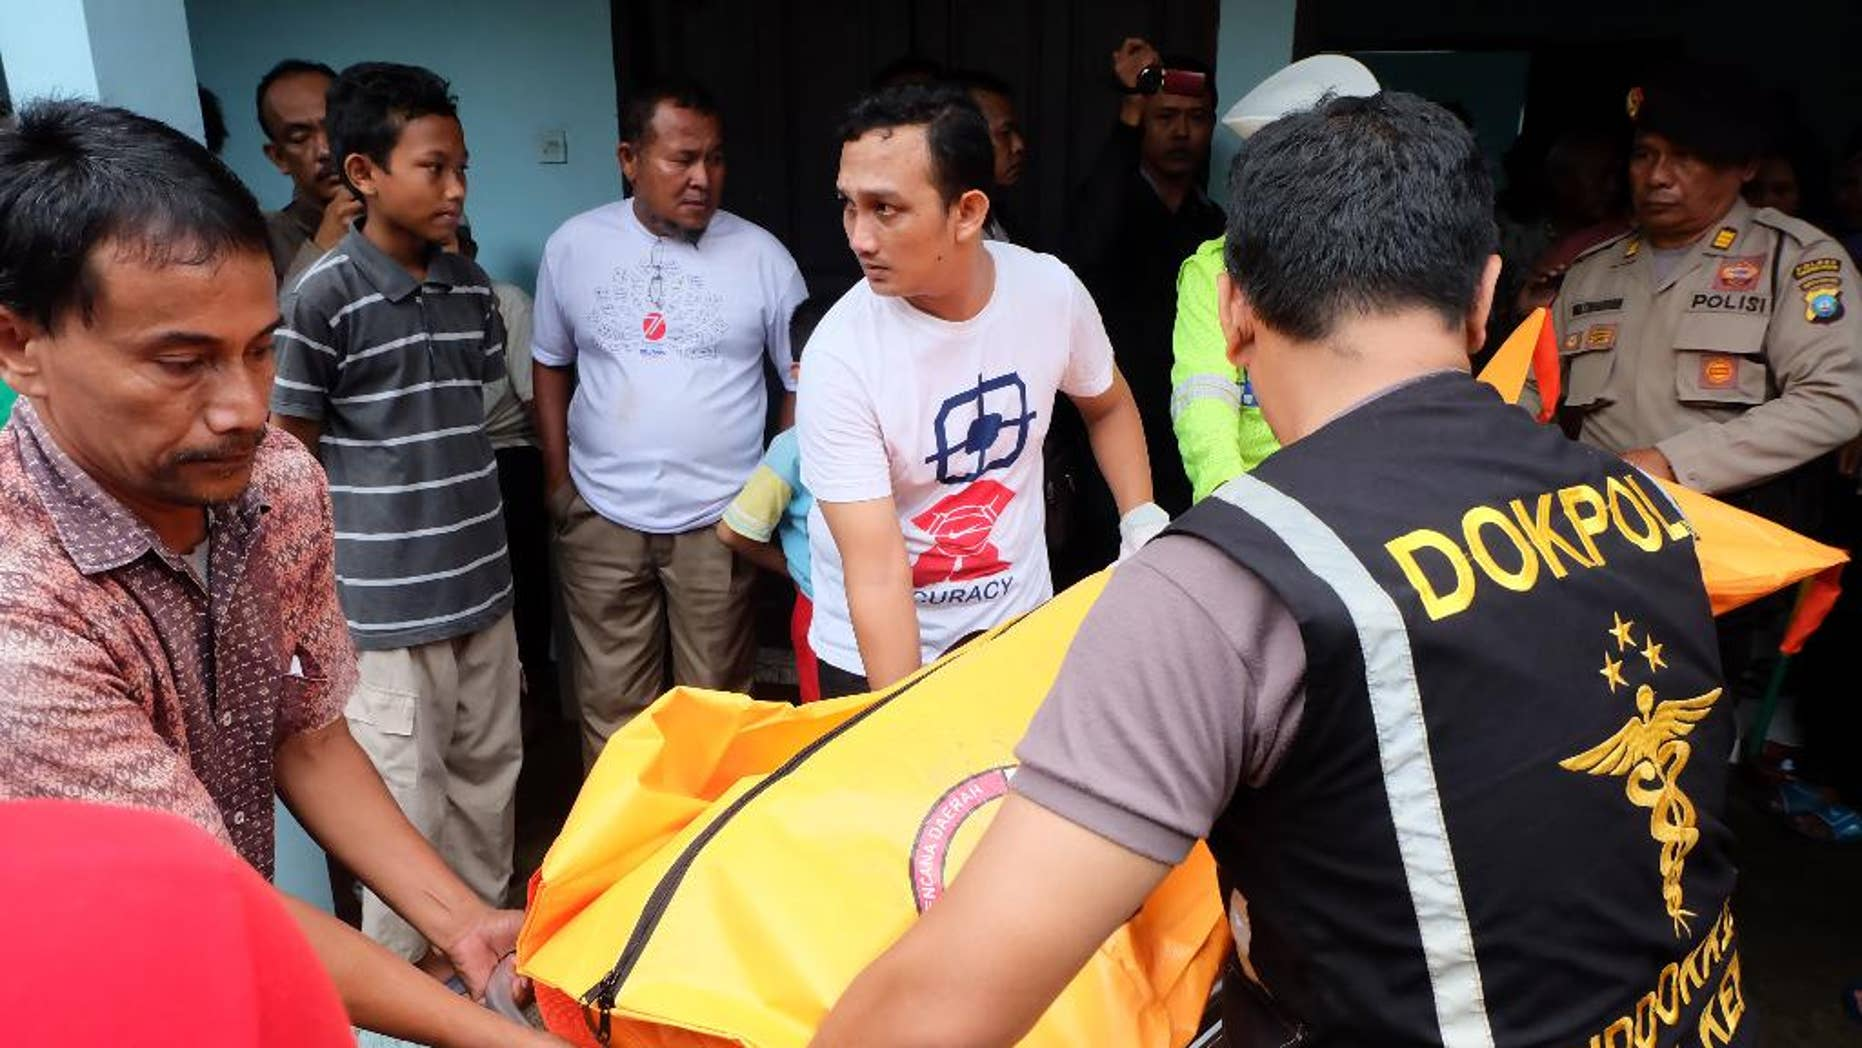 Indonesian police carry a body bag containing a victim of a capsized boat, at a hospital in Tanjungpinang, Bintan island, Indonesia, Sunday, Aug. 21, 2016. A number of people died and others were missing after a small wooden boat capsized in rough seas and sank Sunday off Indonesia's Bintan island, south of Singapore, Indonesian officials said.(AP Photo/Albert)